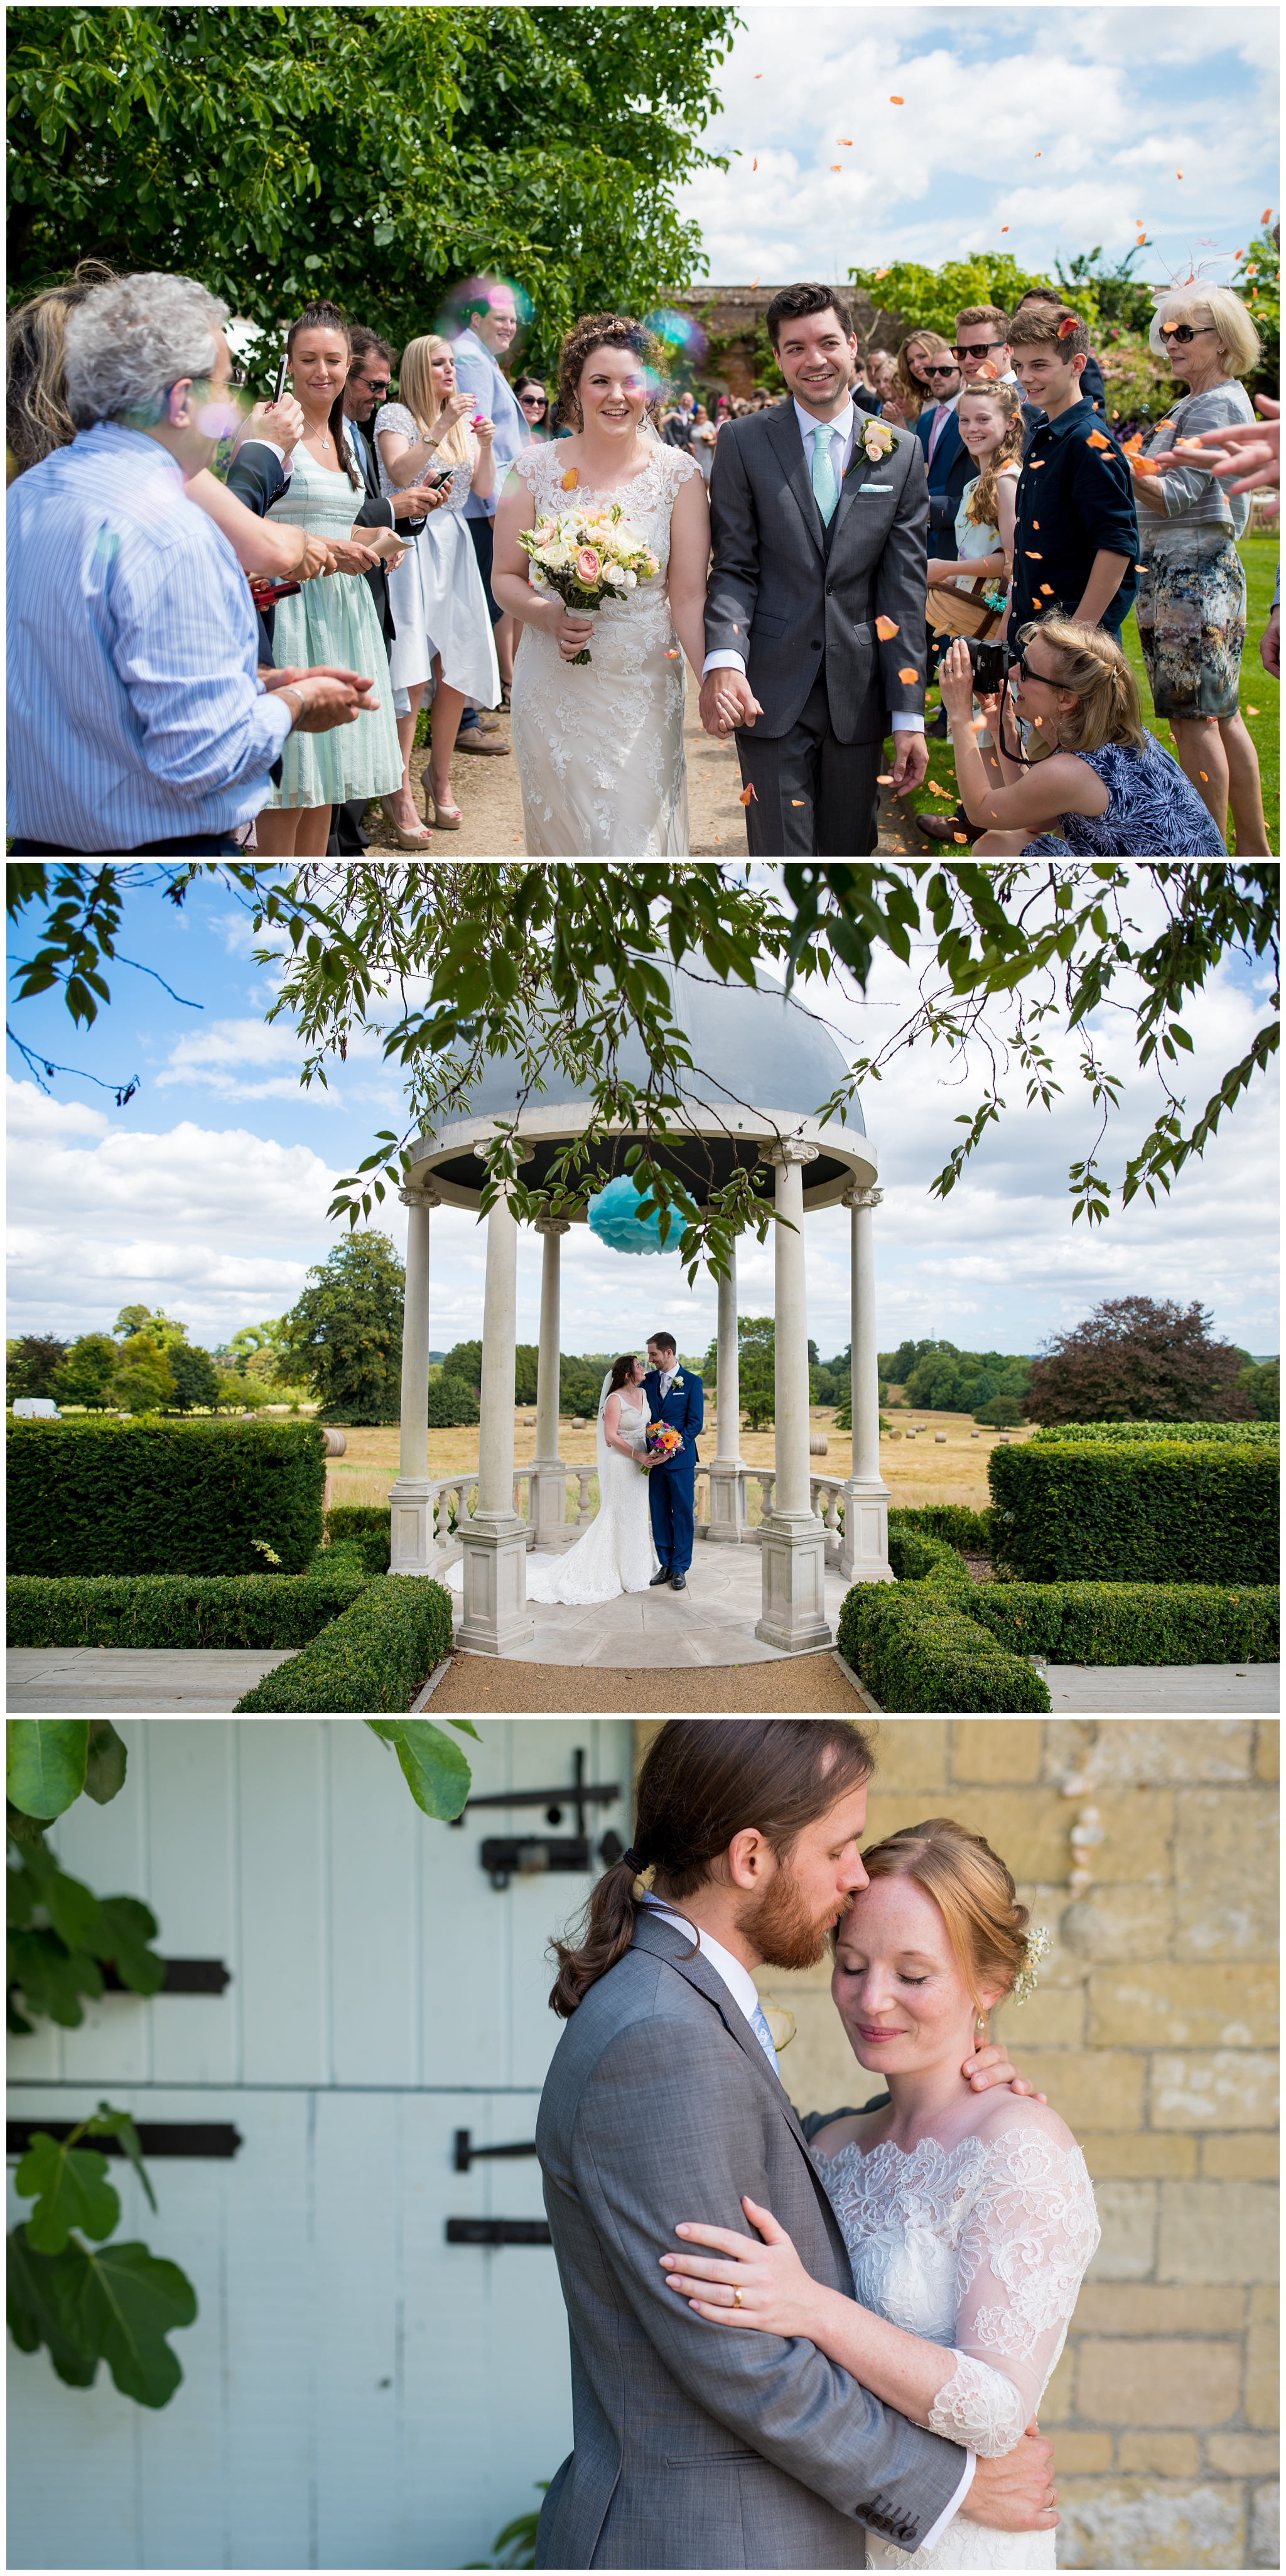 Beautiful wedding photos in Hampshire